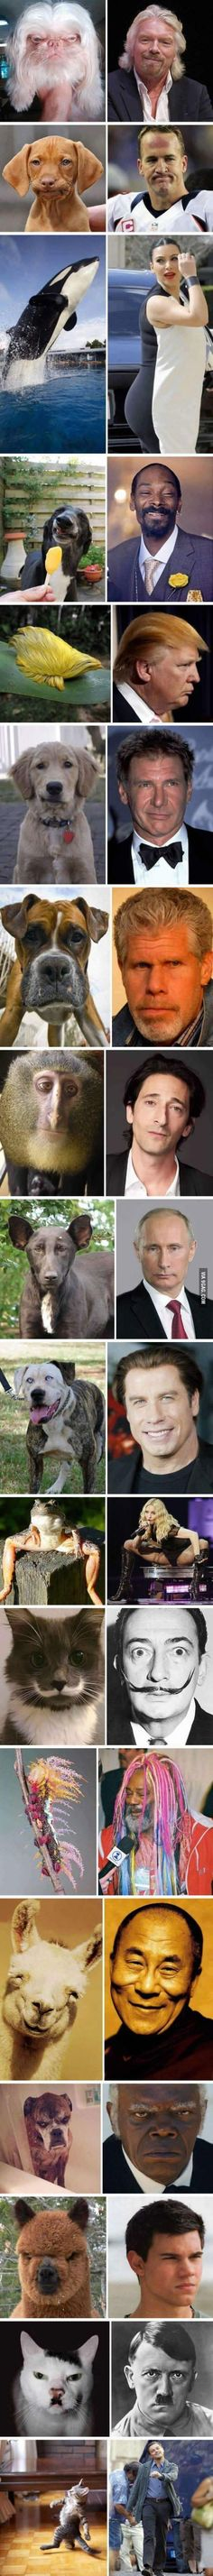 Celebs and their animal lookalikes Funny Animal Memes, Funny Animal Pictures, Best Funny Pictures, Funny Jokes, Funny Animals, Cute Animals, Hilarious, Troll Meme, Sports Humor